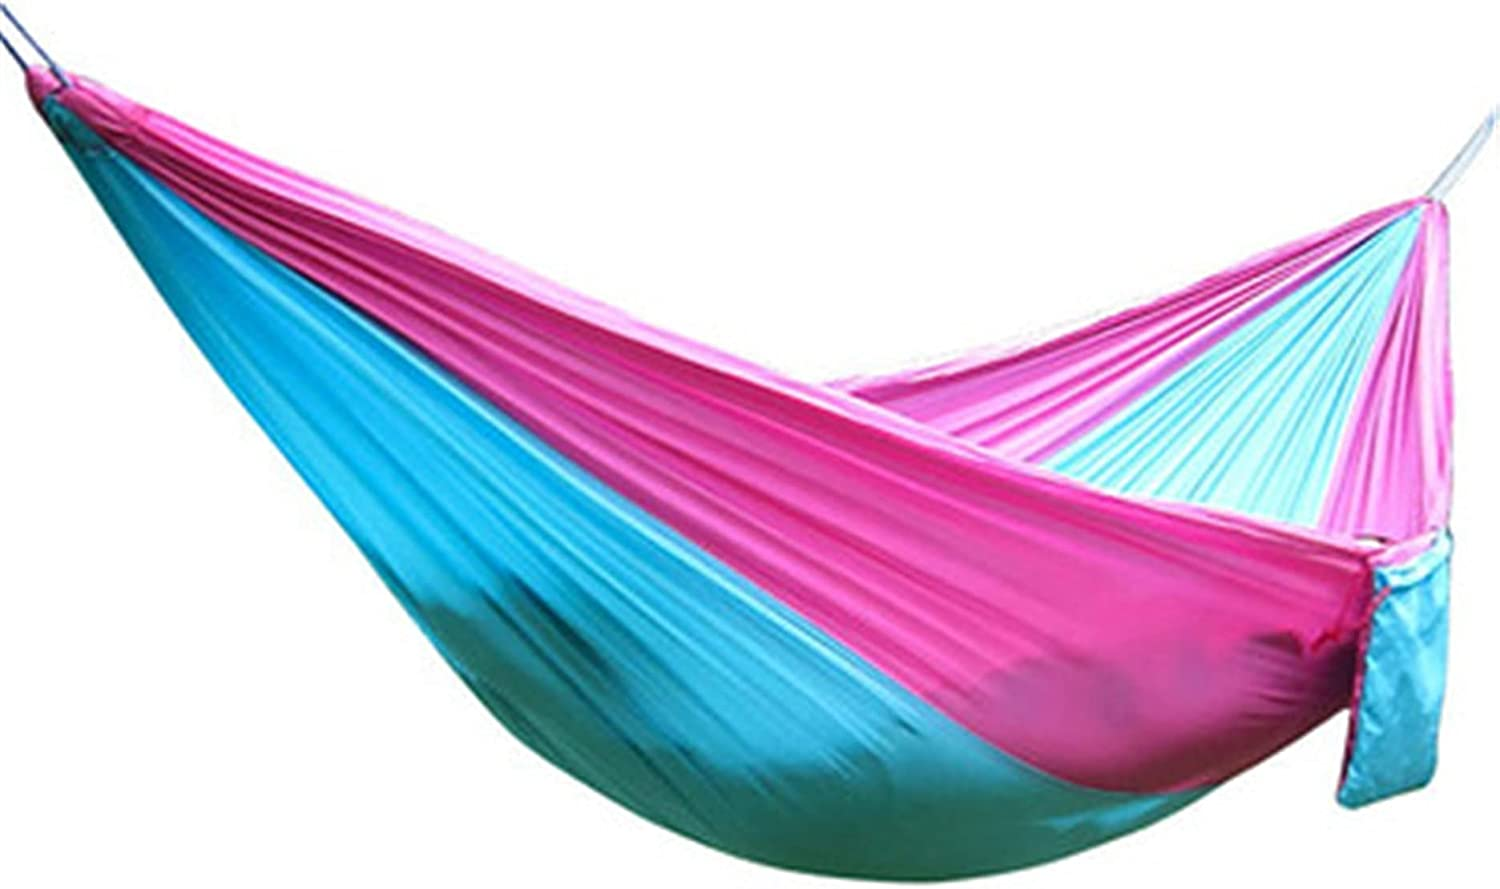 ZWDP Swing Hammock with Hanging for 55% OFF Suitable Tr Device Max 41% OFF Outdoor